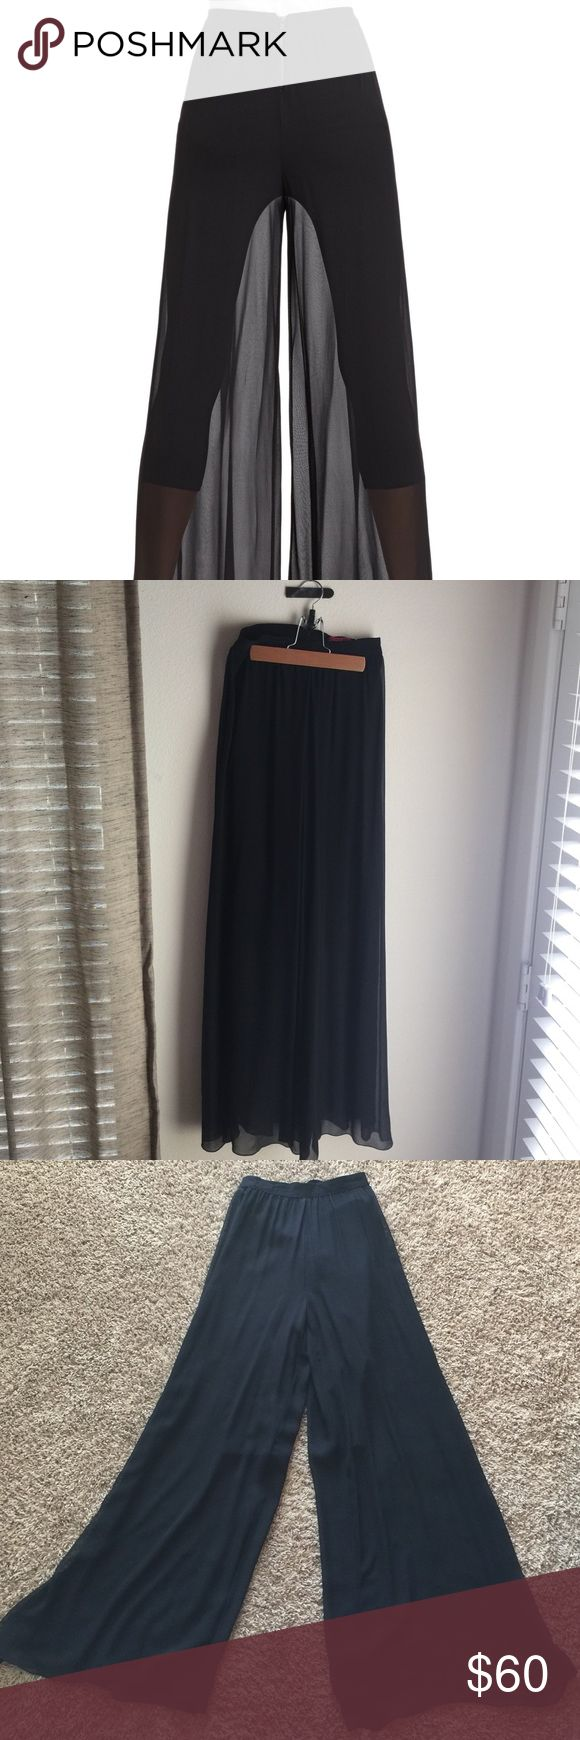 Alice + Olivia black silk chiffon wide leg pants Make a statement in these beautiful black Alice + Olivia silk chiffon sheer wide legged pants size 2! Purchased originally from Nemian Marcus and worn only once or twice. Excellent condition! These pants are stunning and very comfortable at the same time. Make them yours today! ❤️ Alice + Olivia Pants Wide Leg